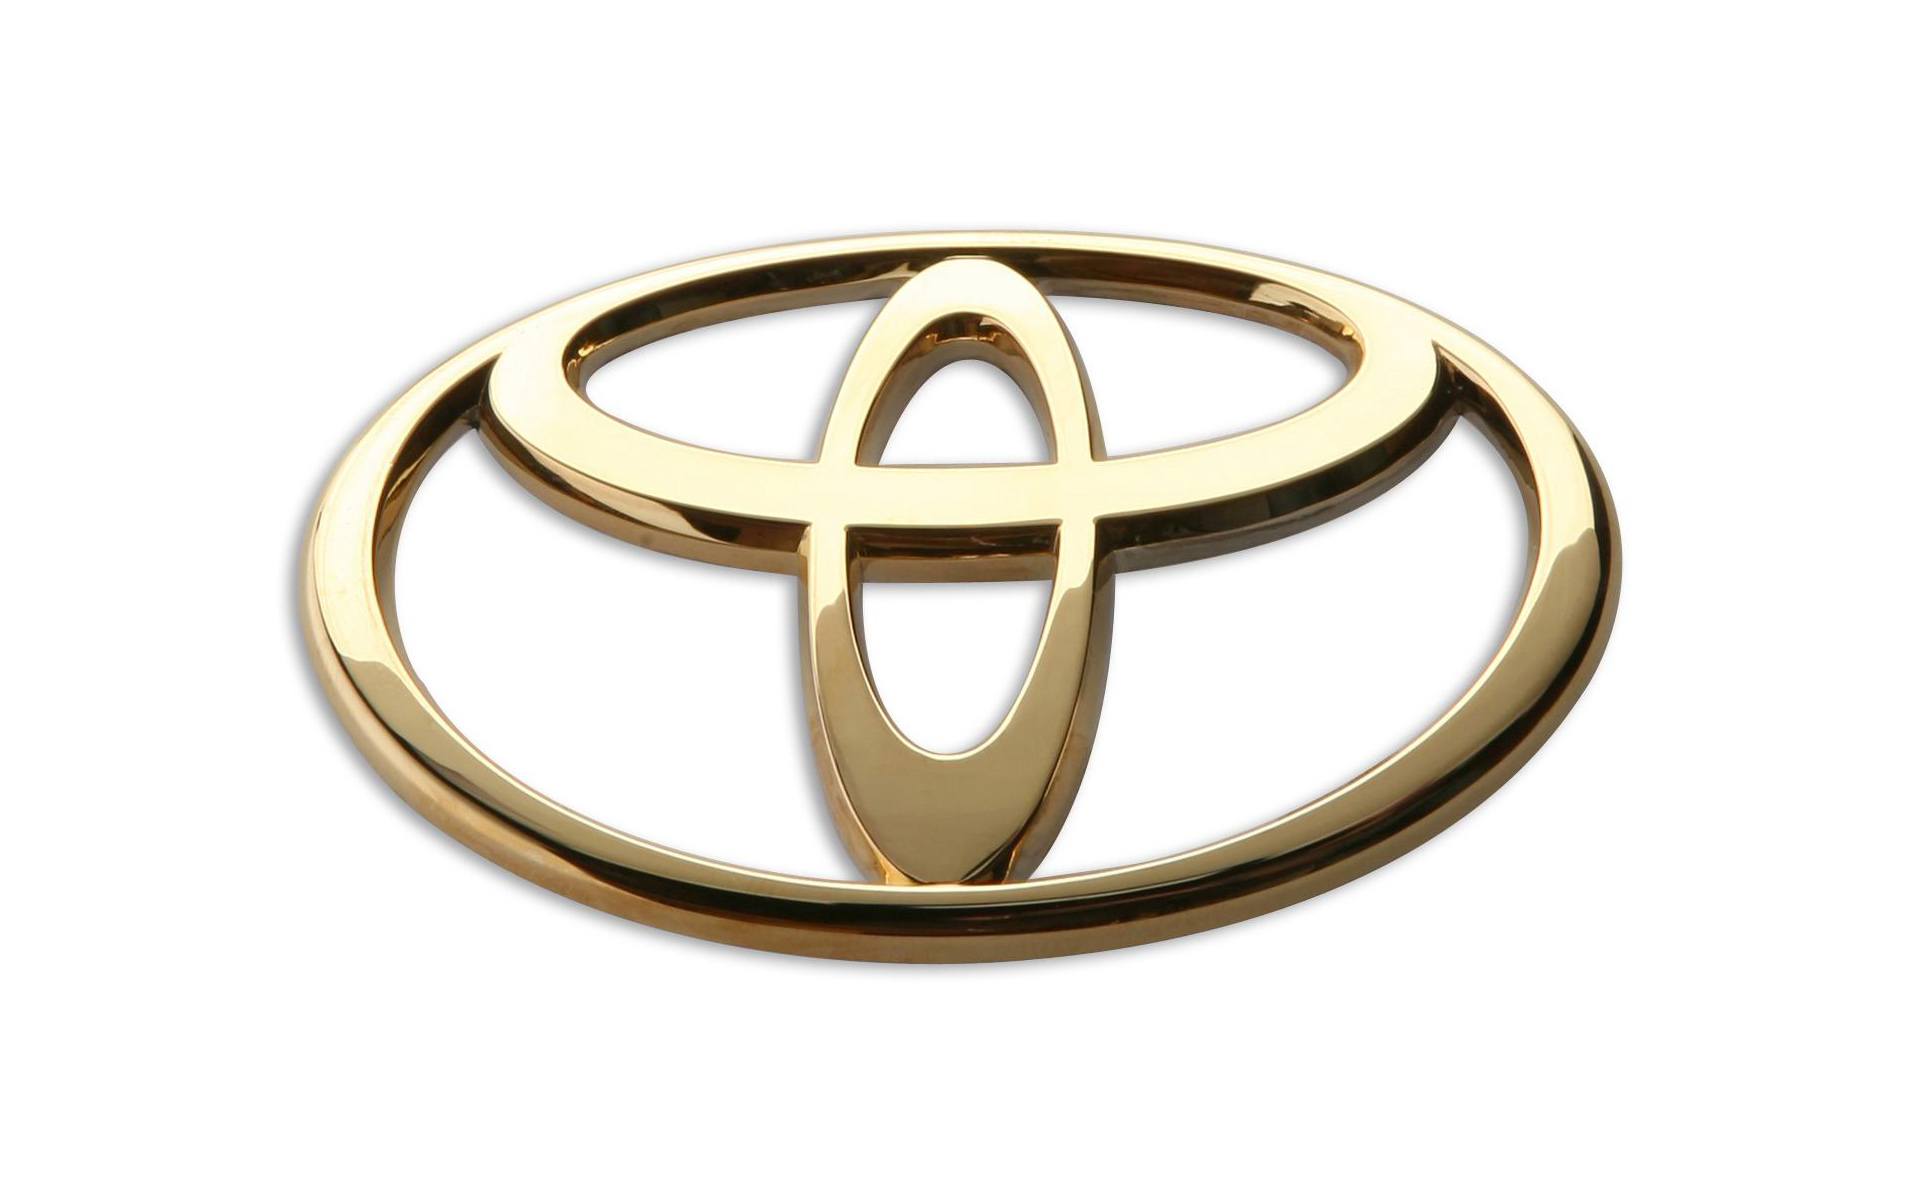 1920x1200 Toyota Logo, Toyota Car Symbol Meaning And History Car Brand